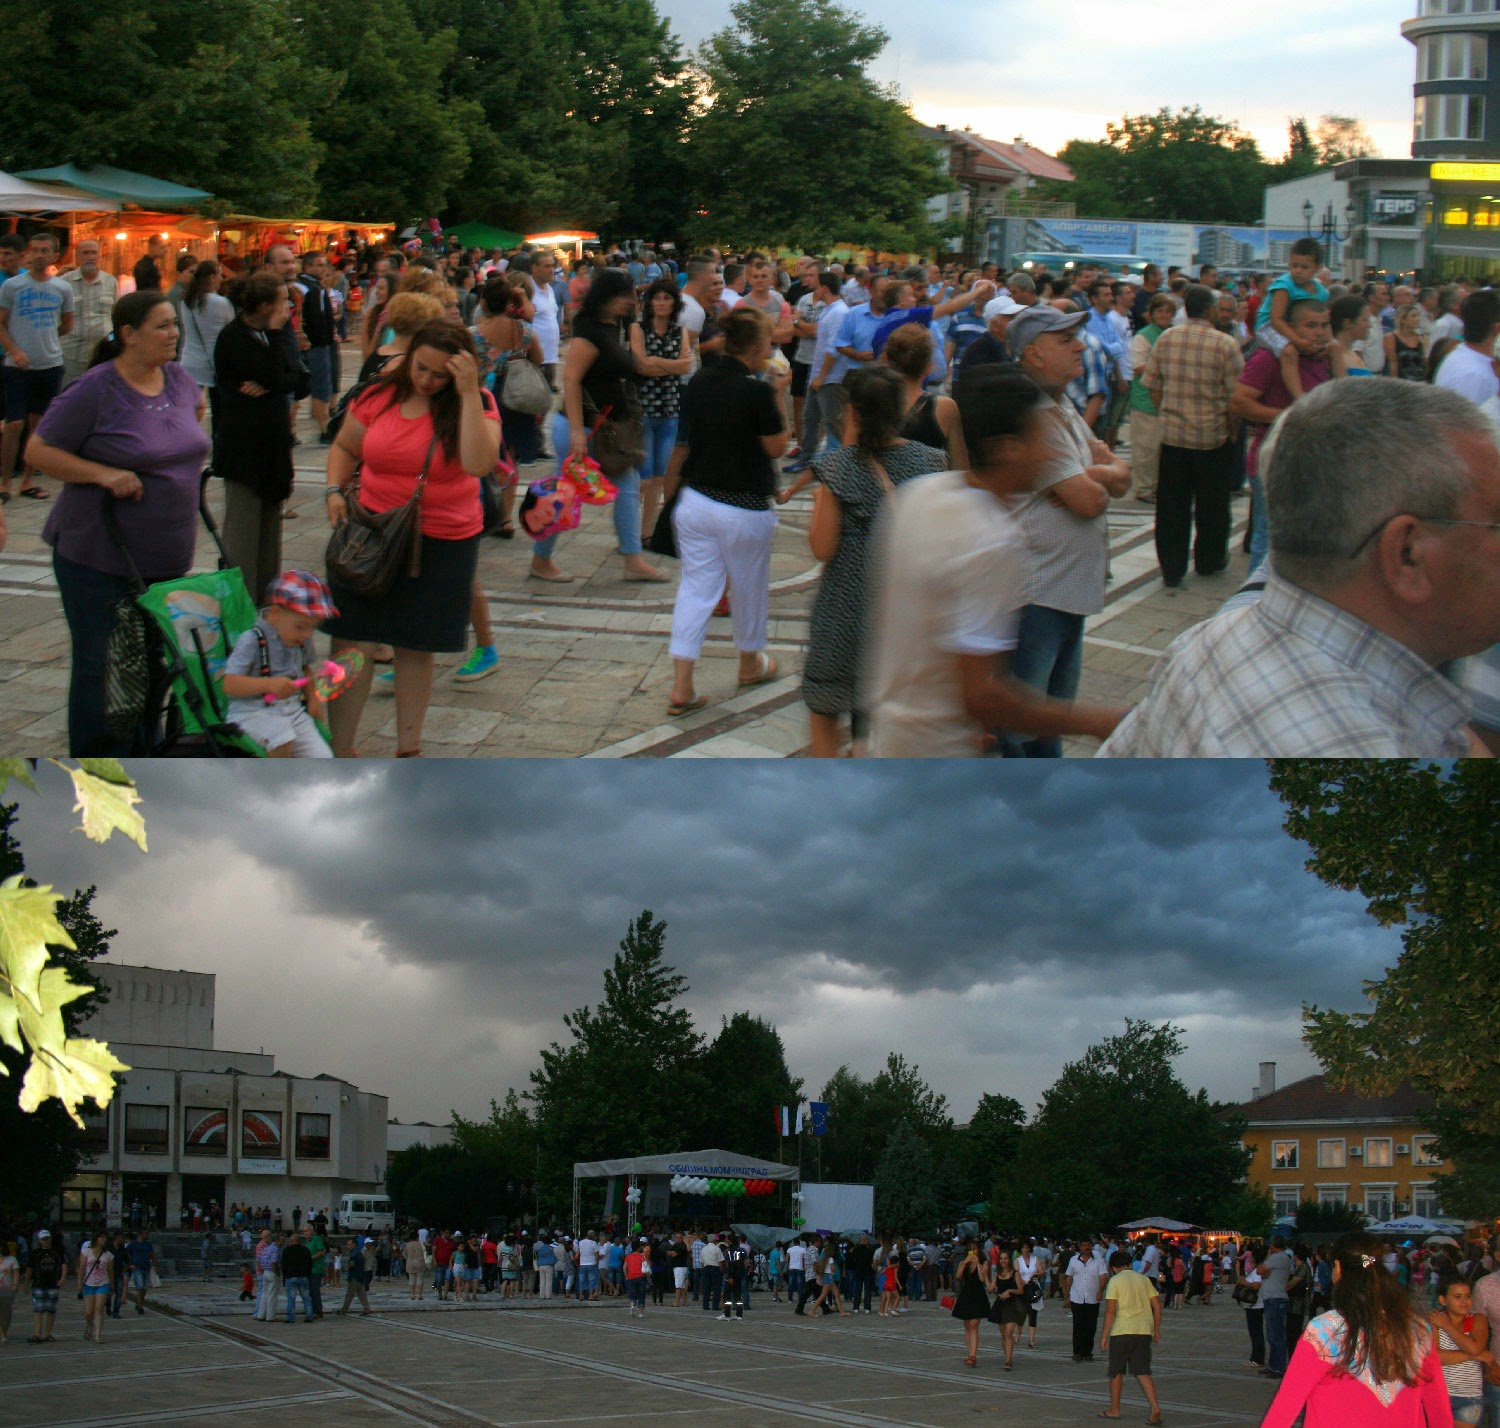 Before the rain and after (4 mins between shots)